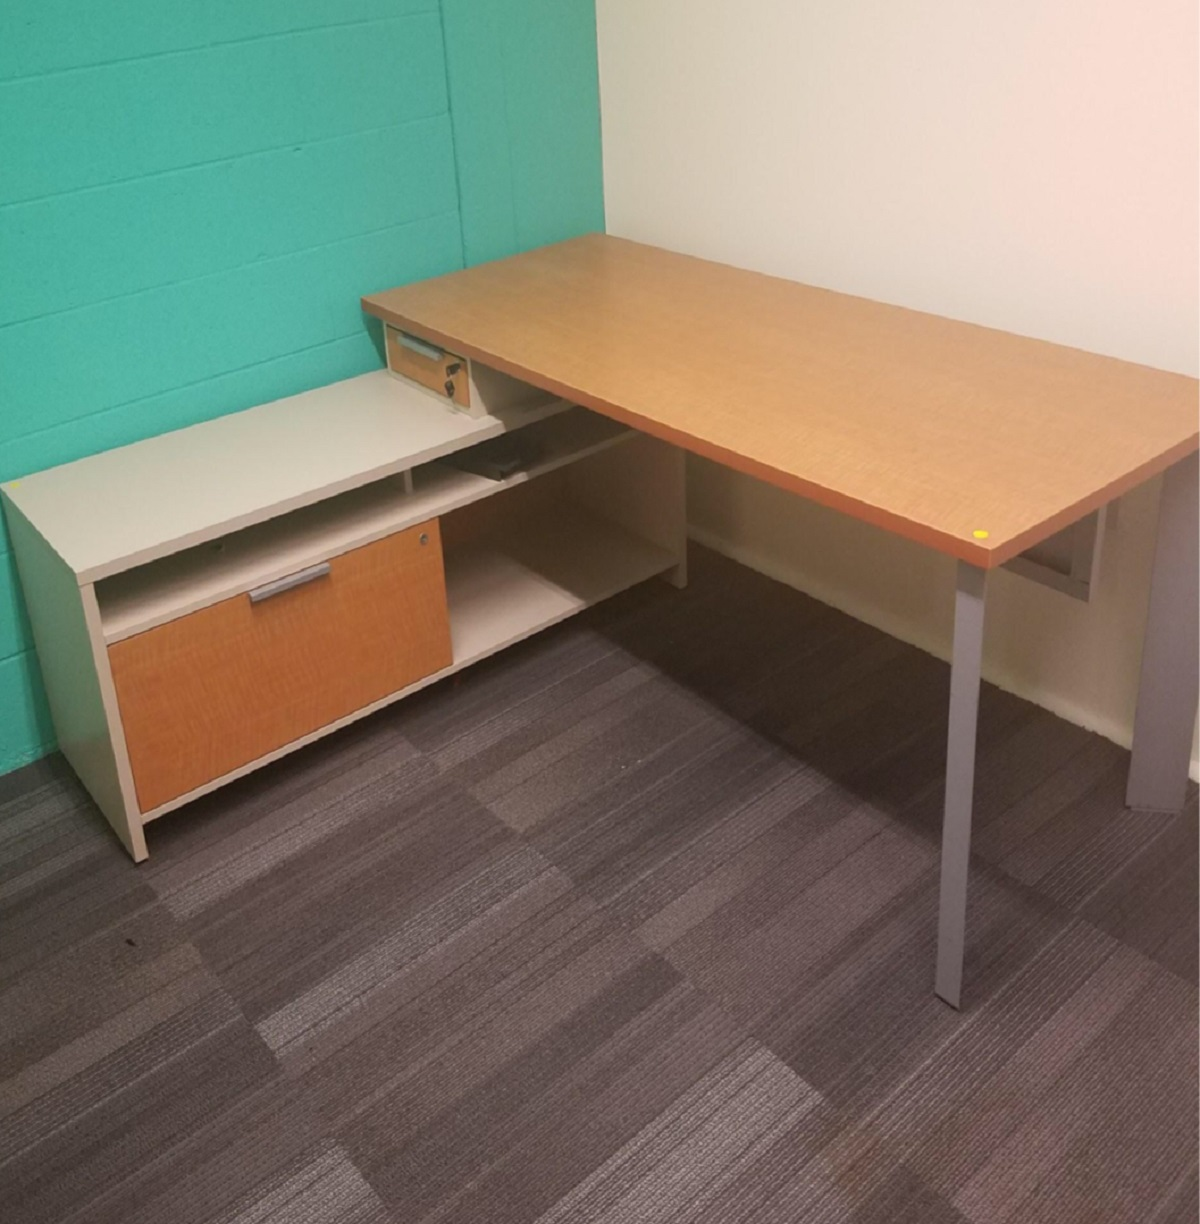 L Shape Desk with Cabinet Attached